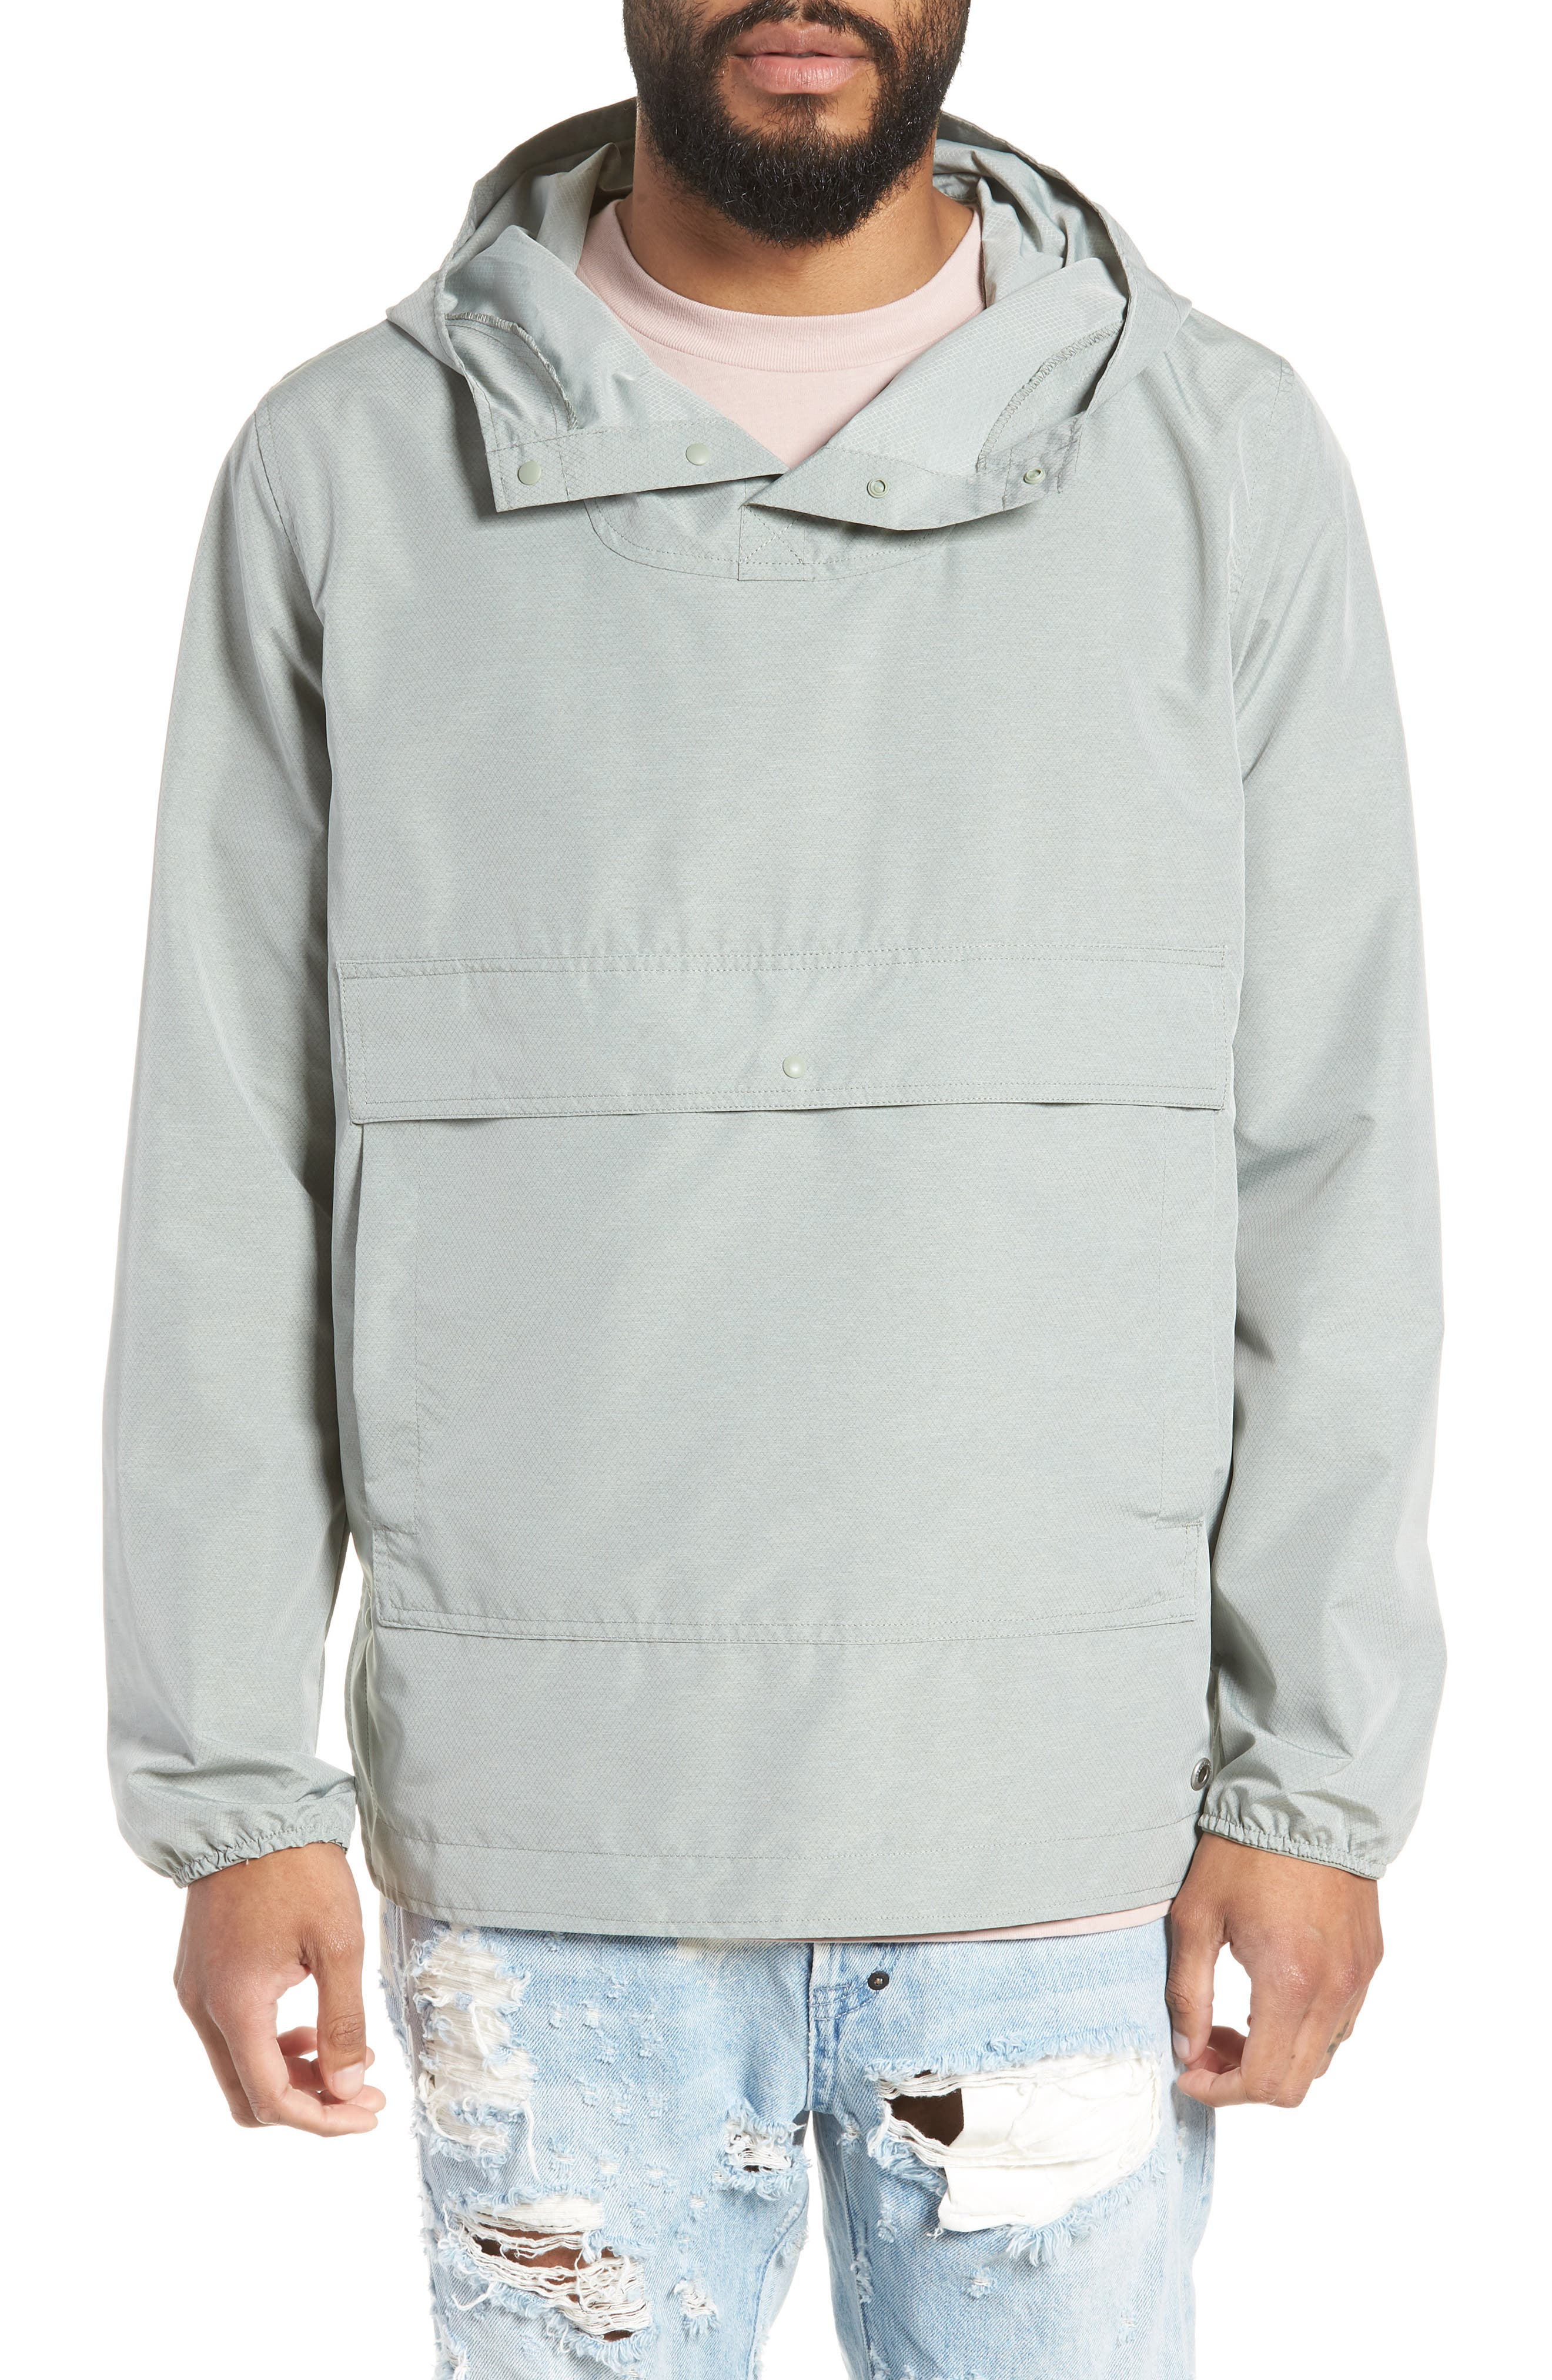 Voyage Anorak,                         Main,                         color, Shadow Crosshatch / Black